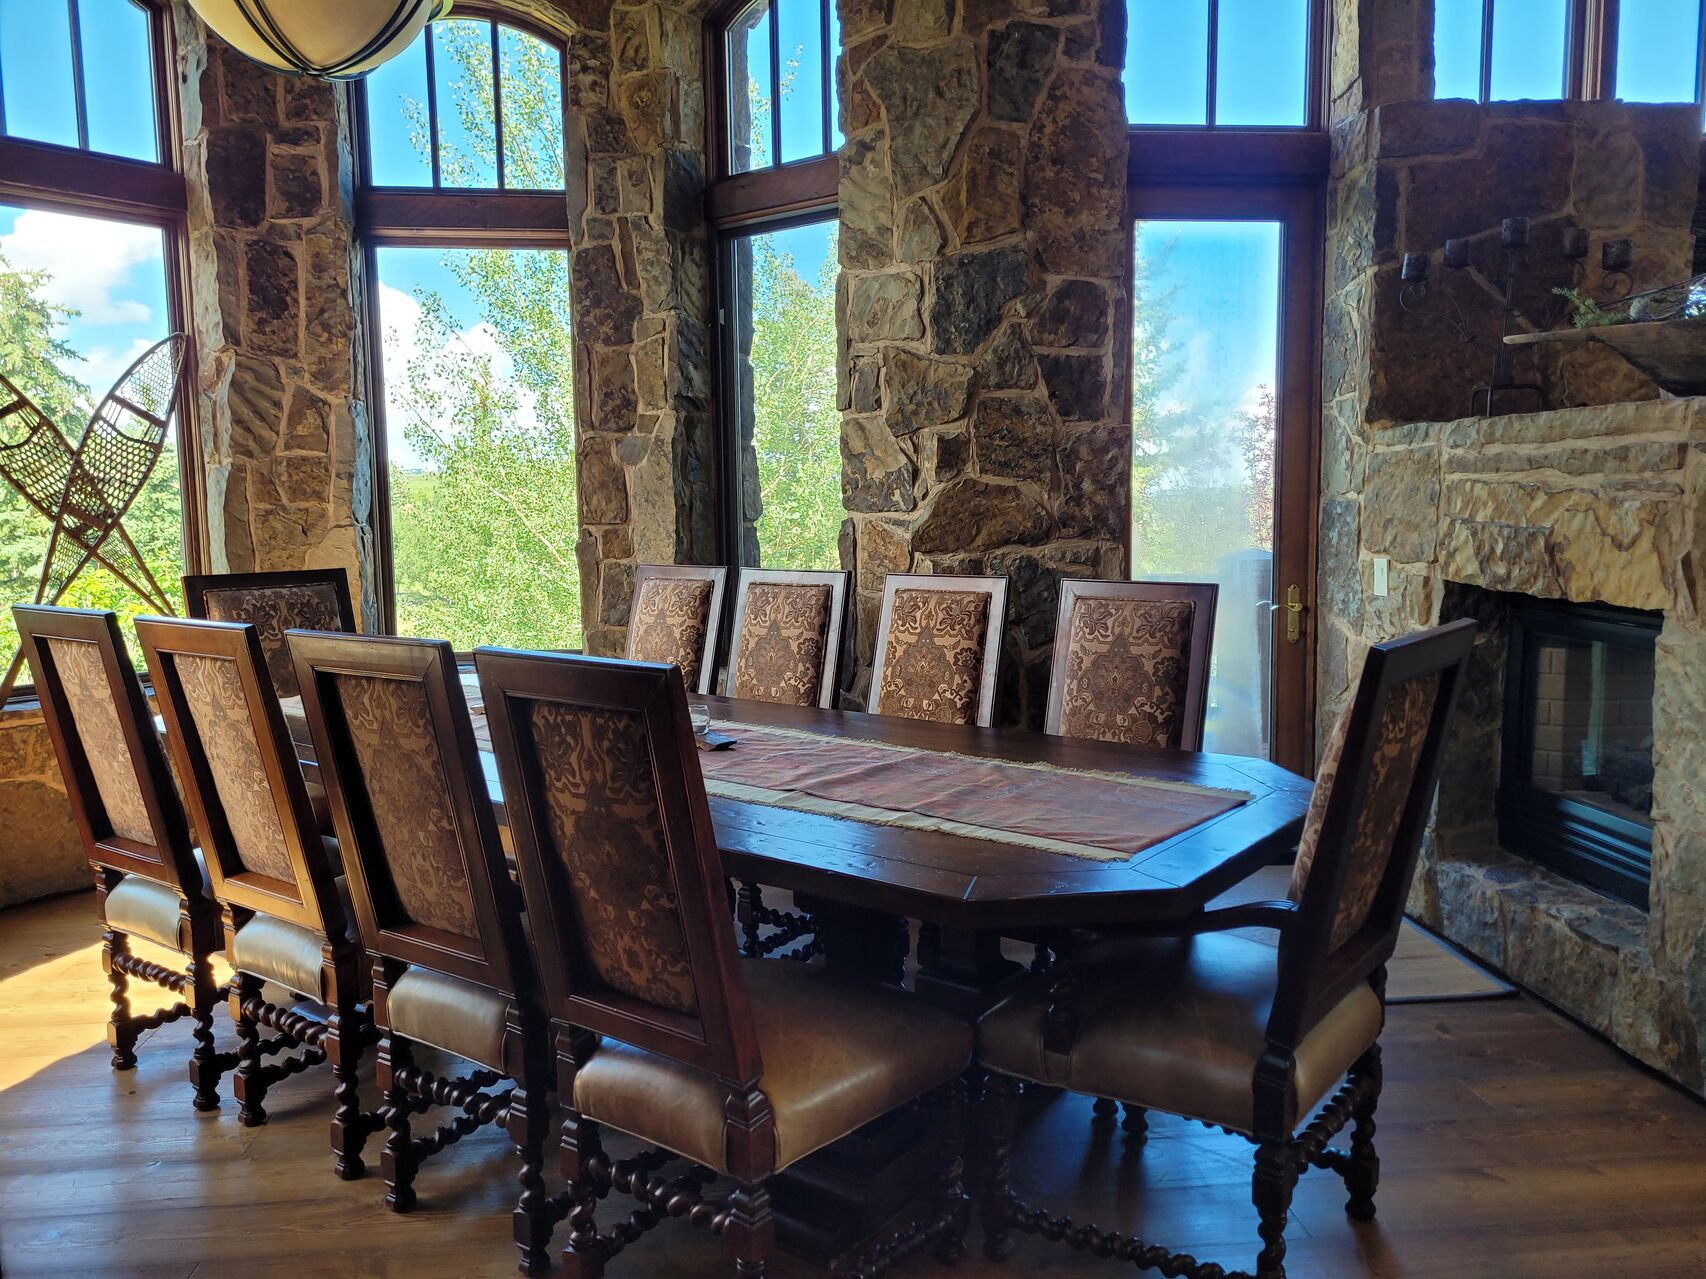 Luxury dining room with large table and stone walls